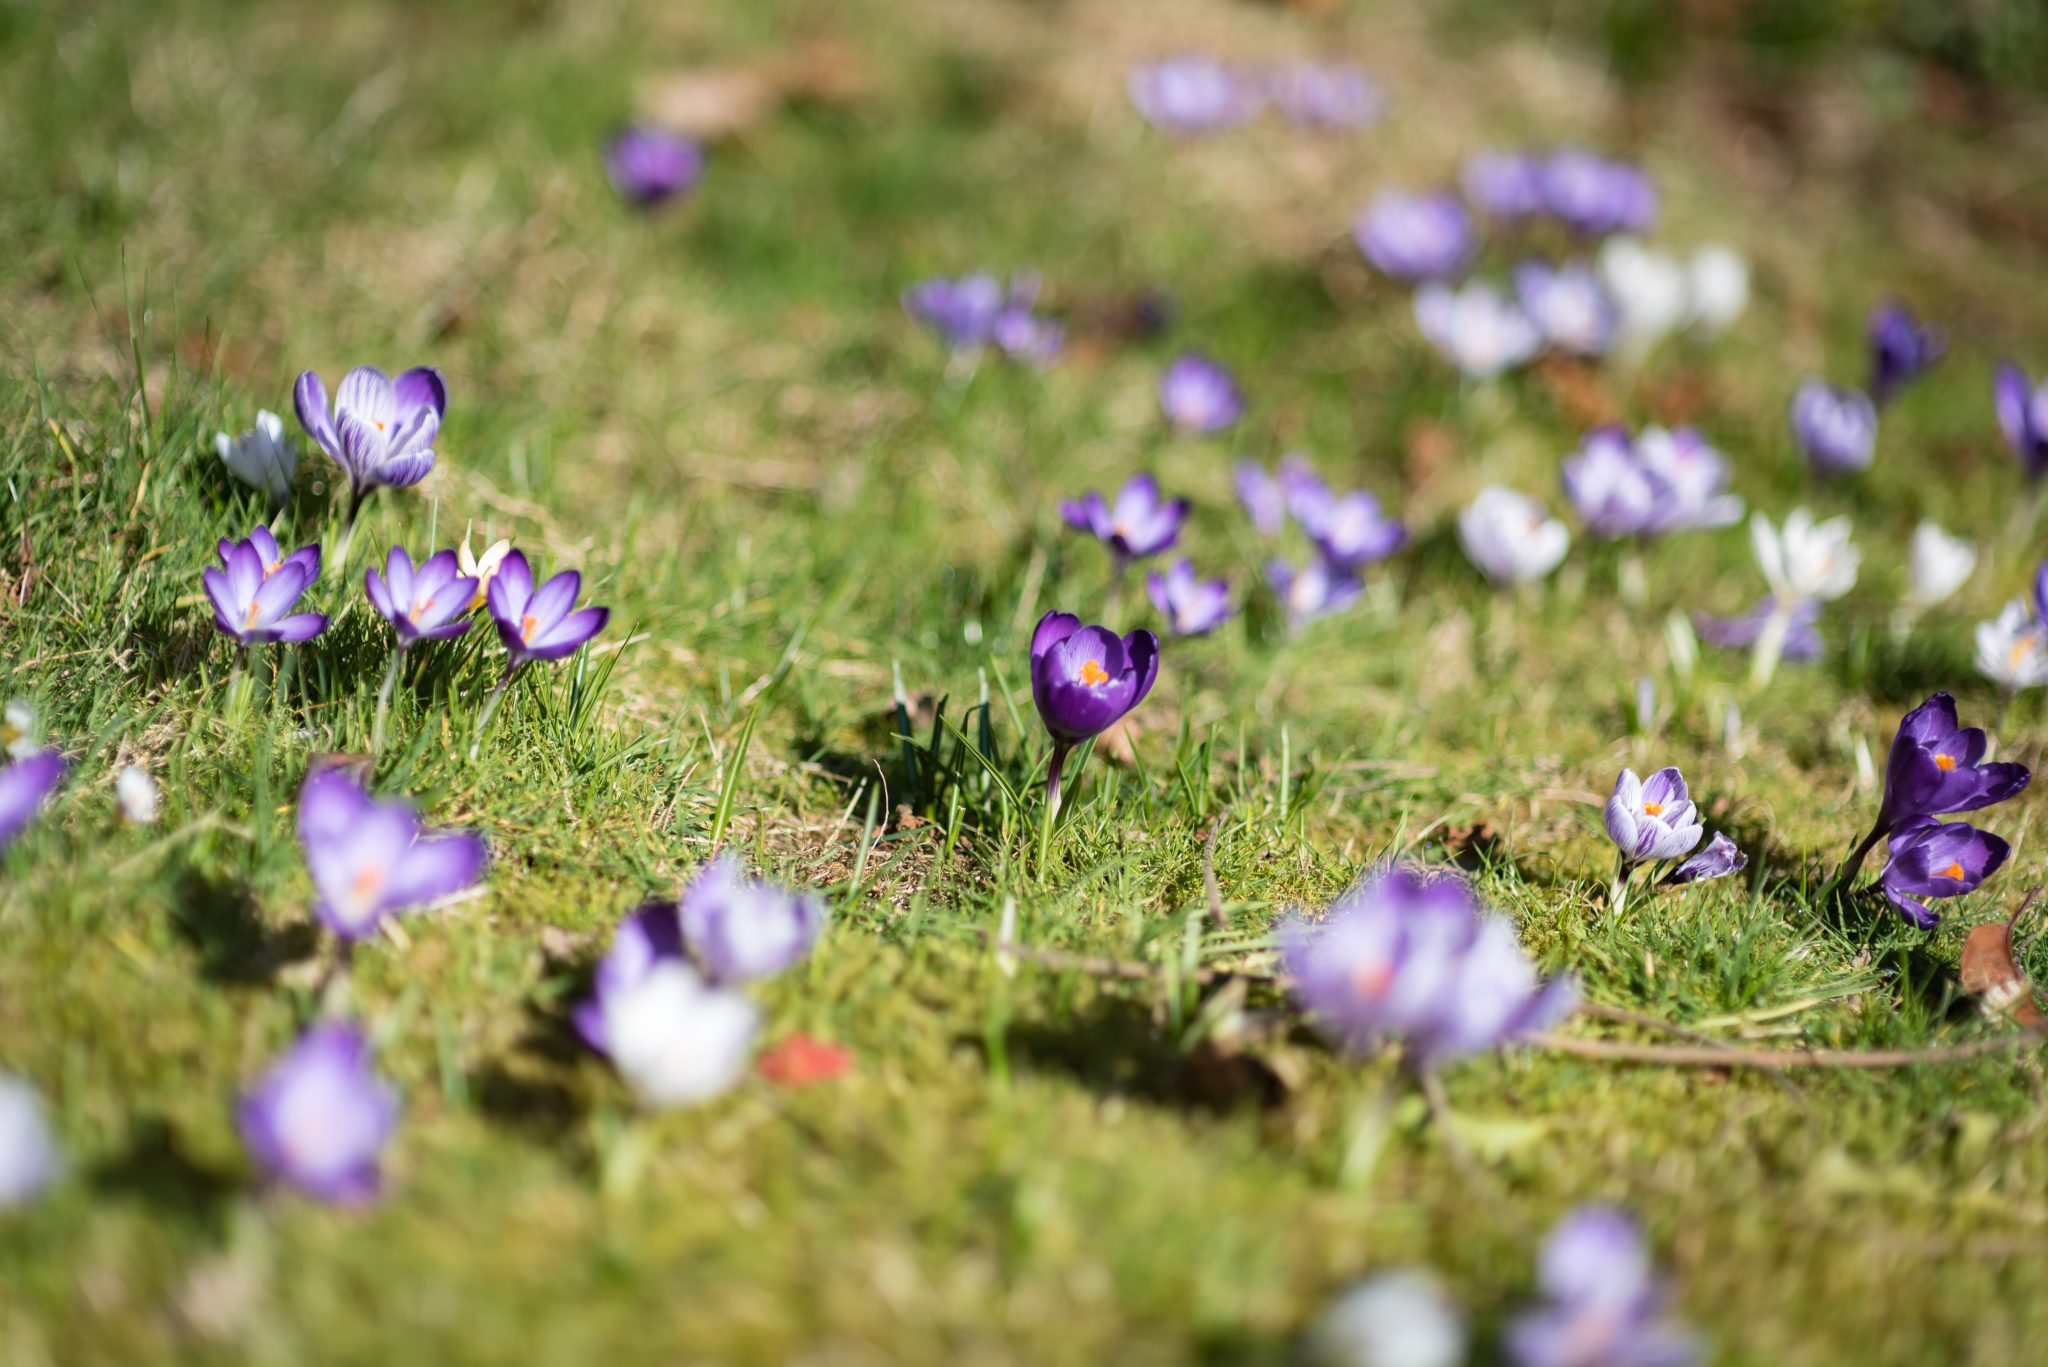 Photograph of crocus flowers growing naturally in a lawn